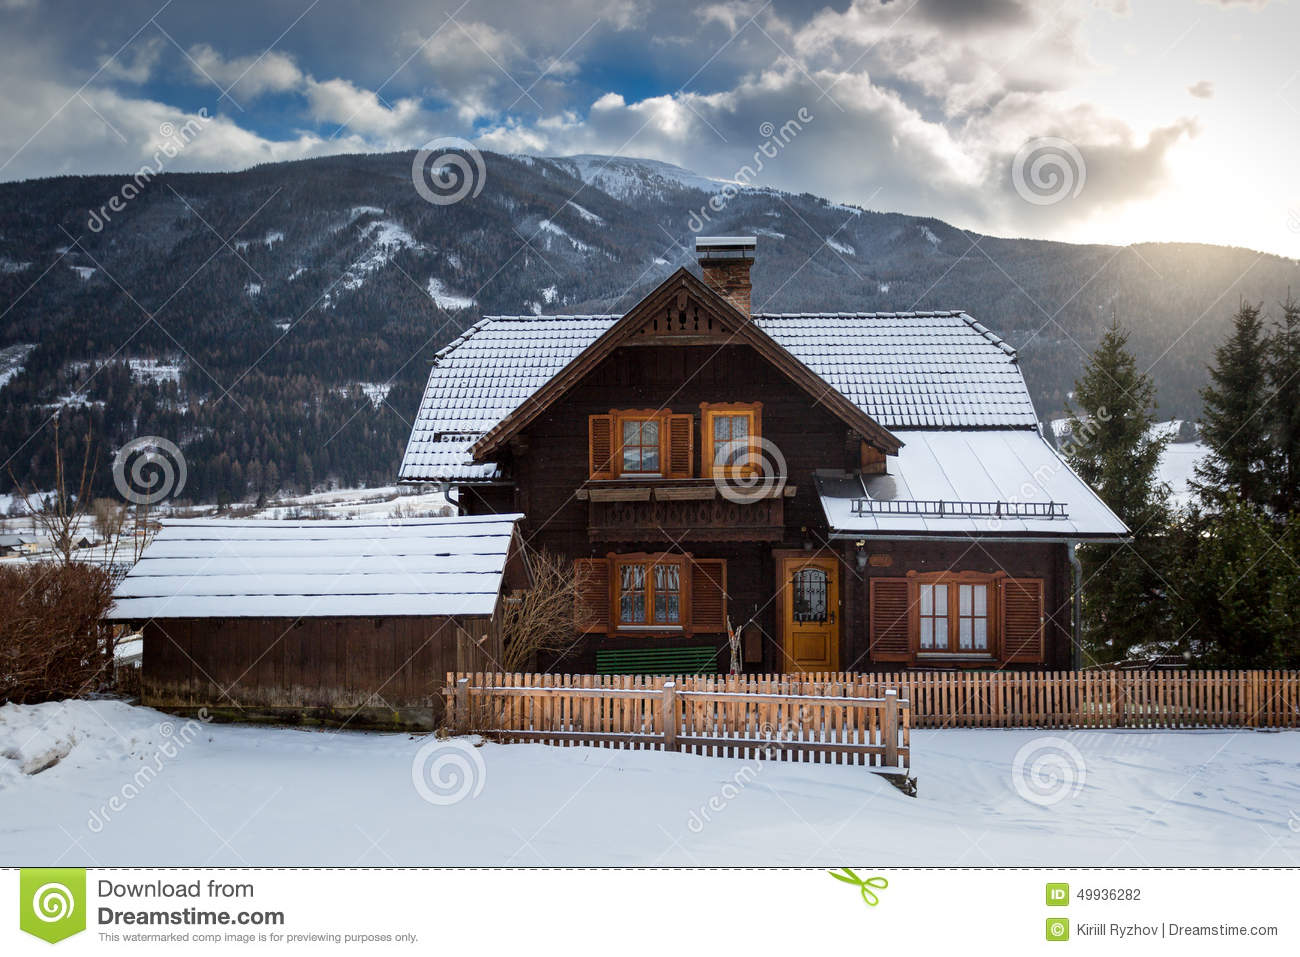 House In Snowy Mountain Alps Editorial Image 35925556 Austrian Style Plans Mountains Beauty